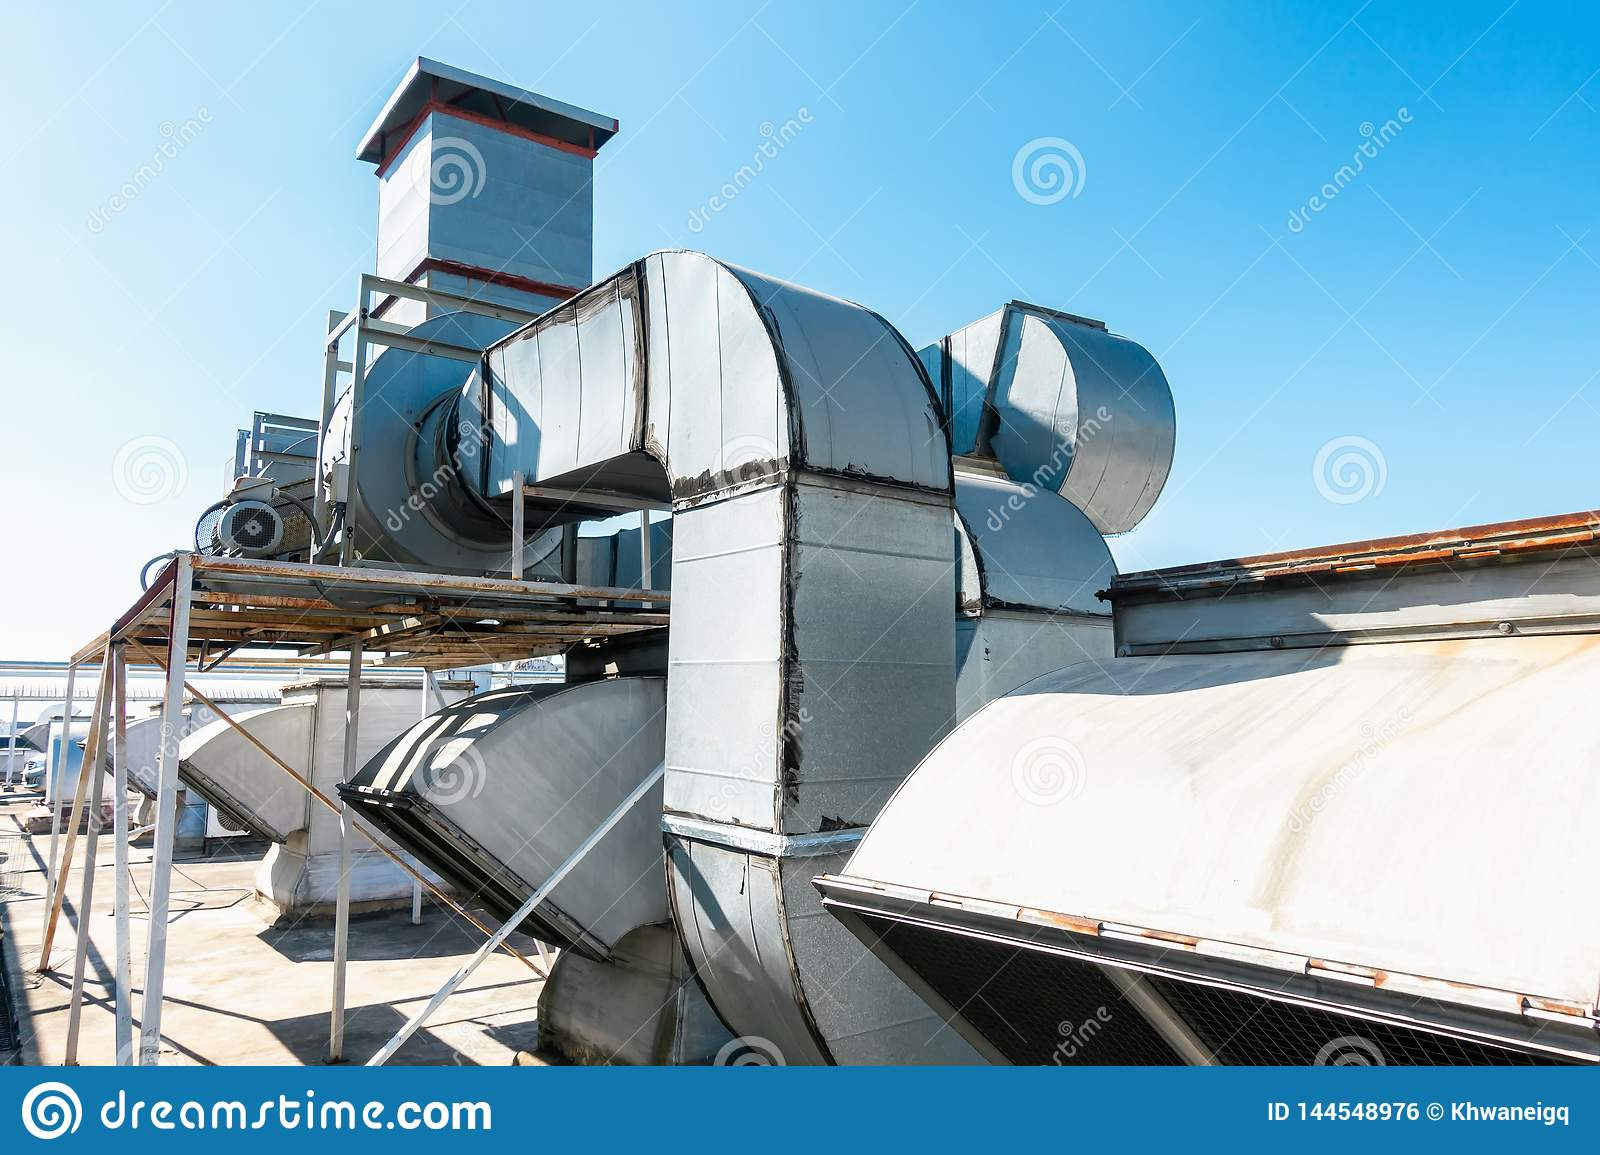 https www dreamstime com ventilation air duct hvac cleaning system exhaust hood air blower manufacturing food industrial equipment ventilation image144548976